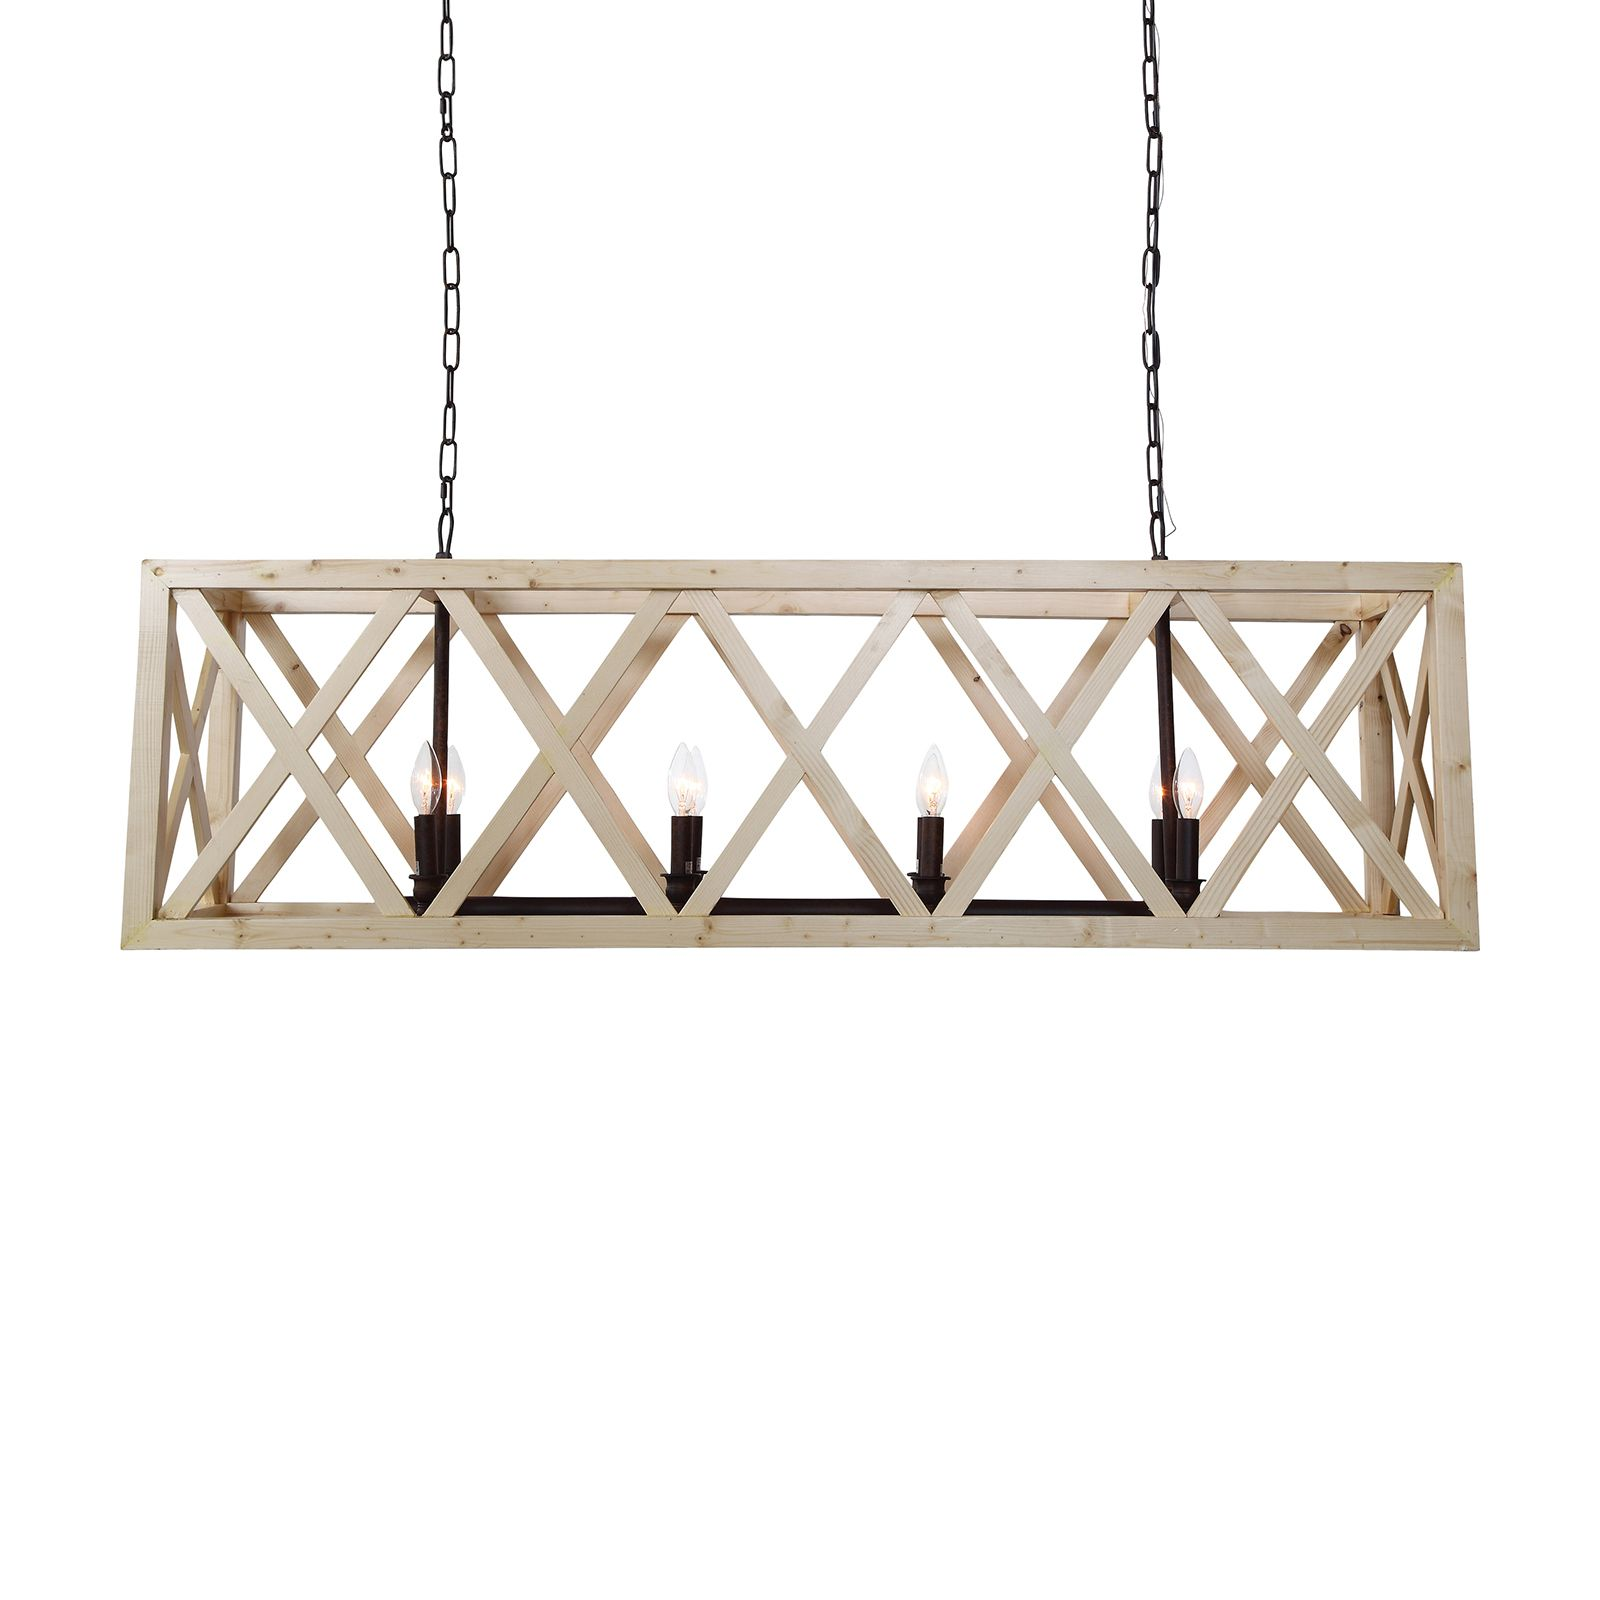 24 Rectangular Chandelier Designs Decorating Ideas: Furniture And Décor For The Modern Lifestyle